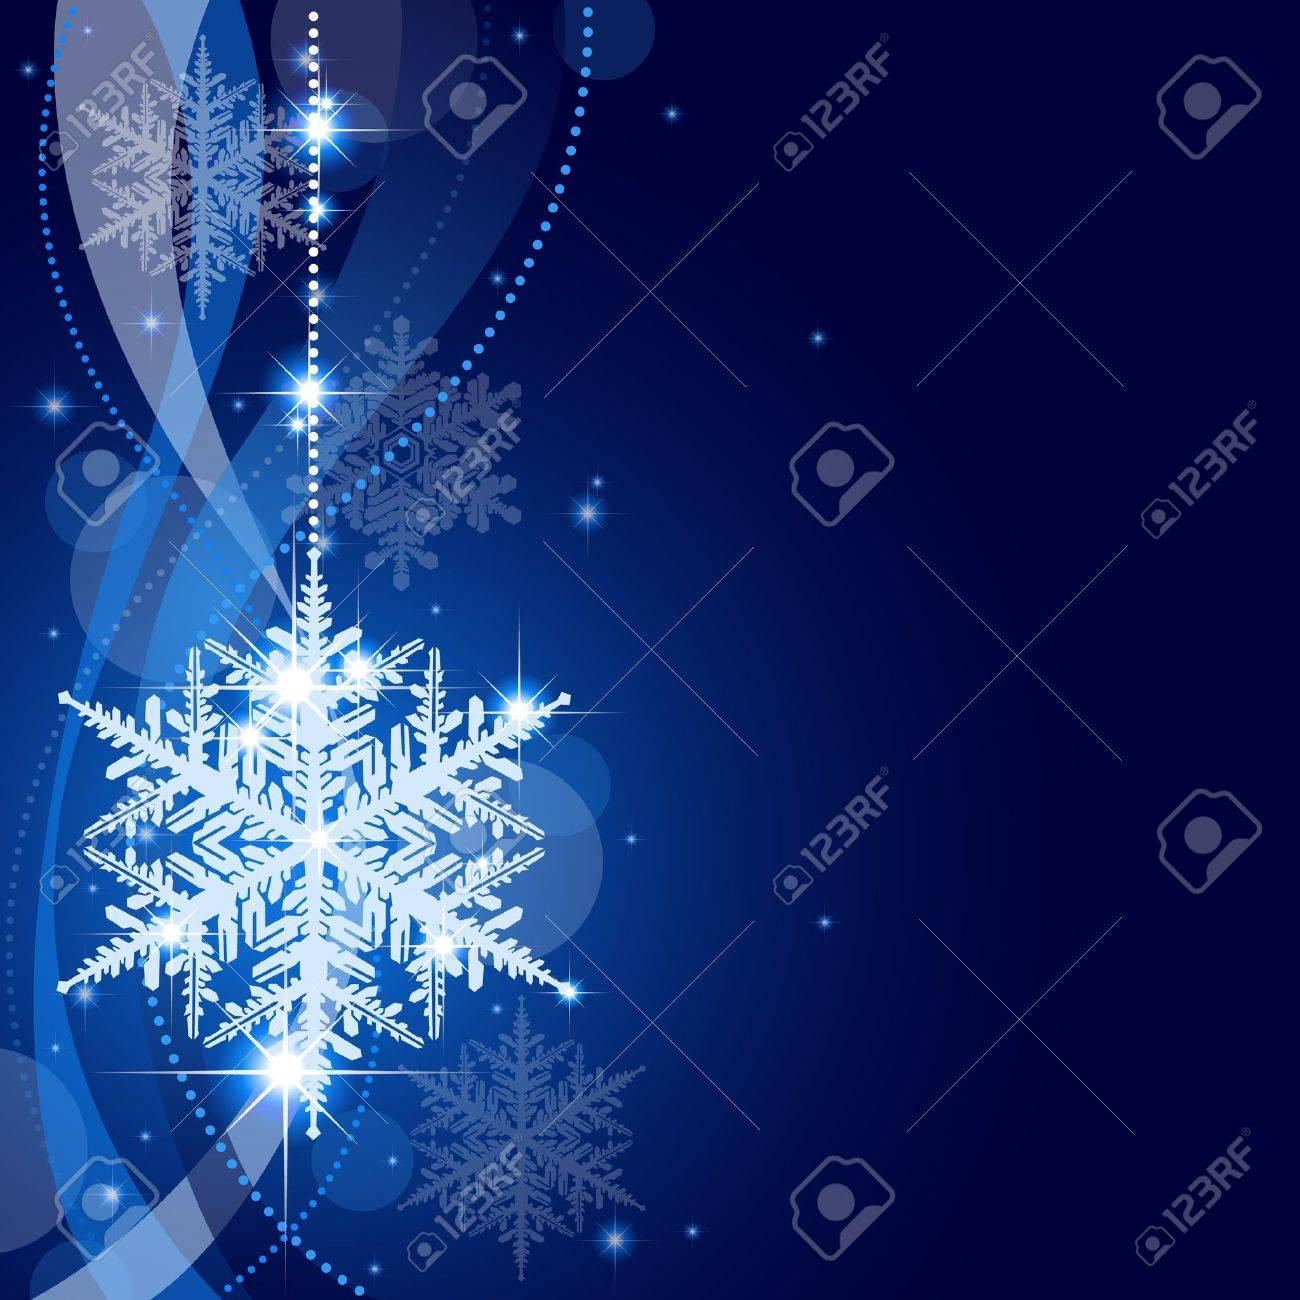 Winter Christmas Background - Abstract Xmas Illustration Stock Vector - 16310788